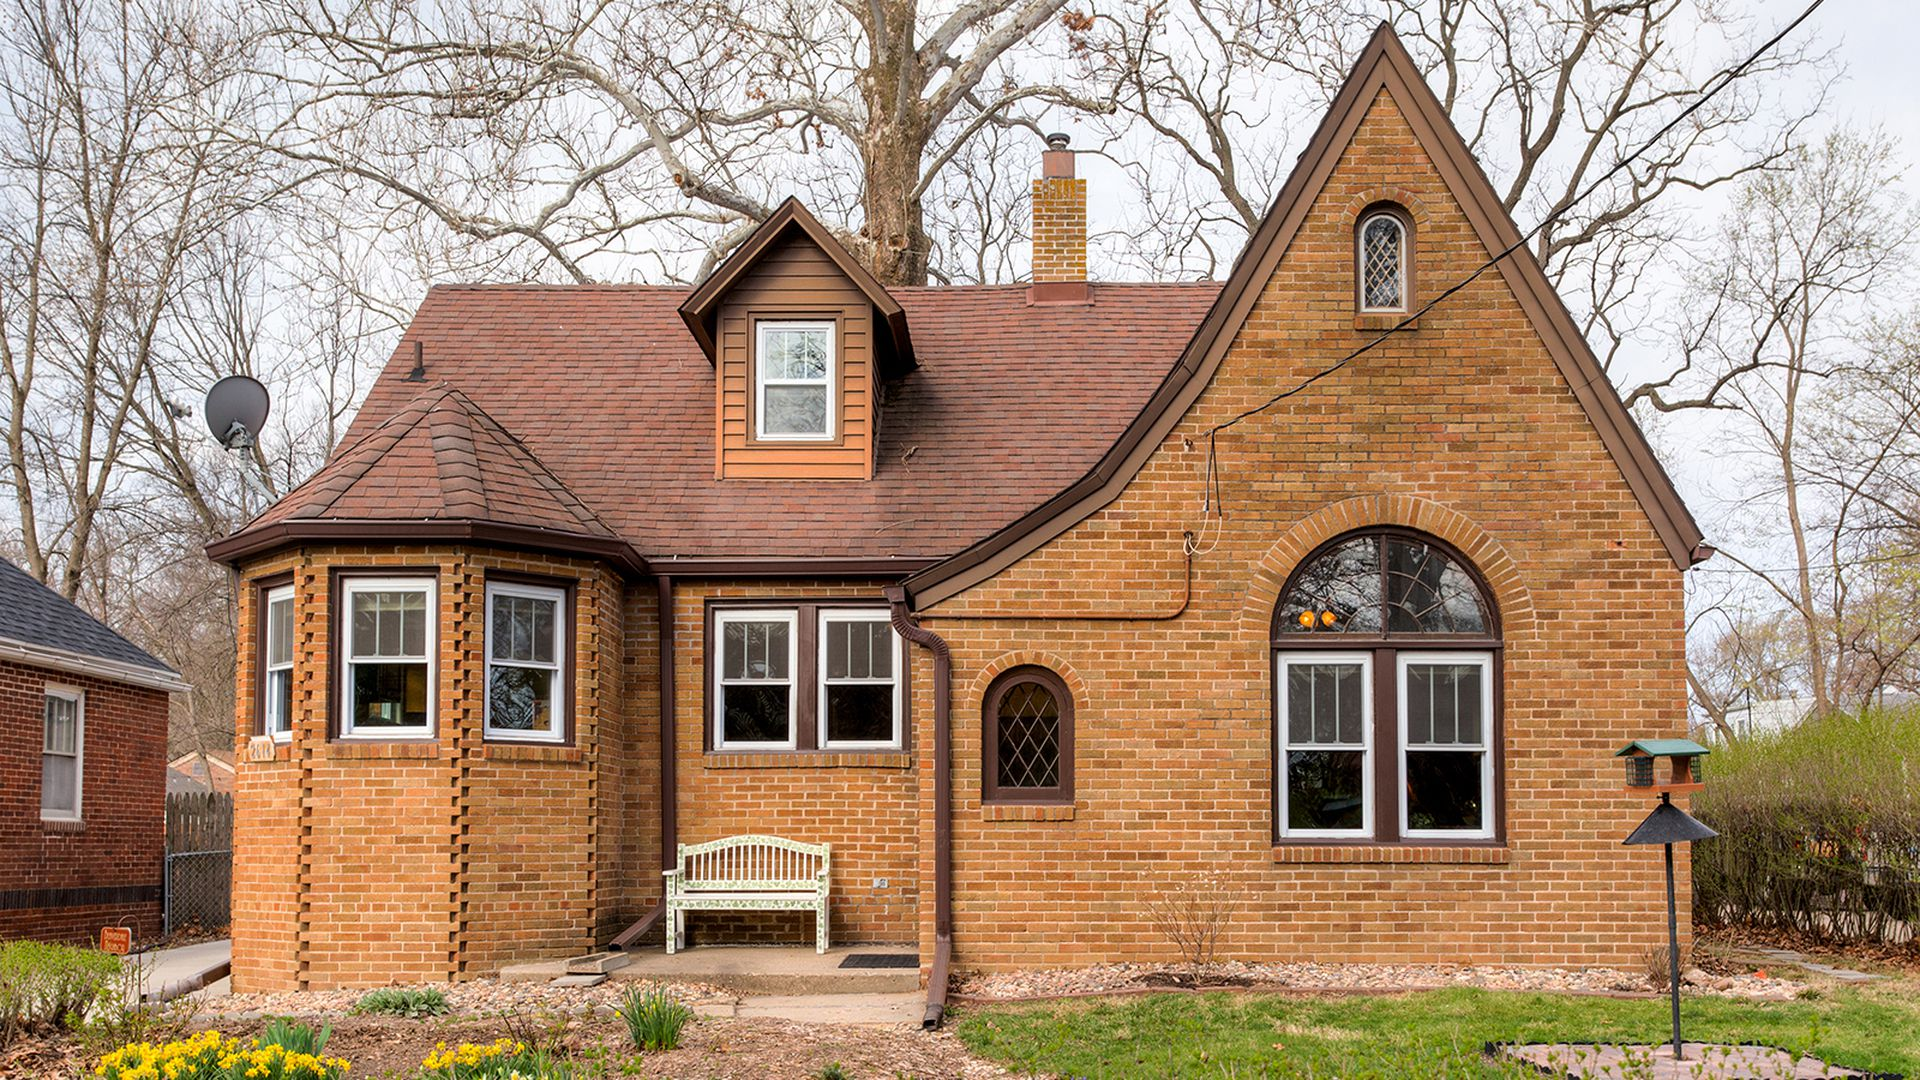 A cottage-style home in Beaverdale.